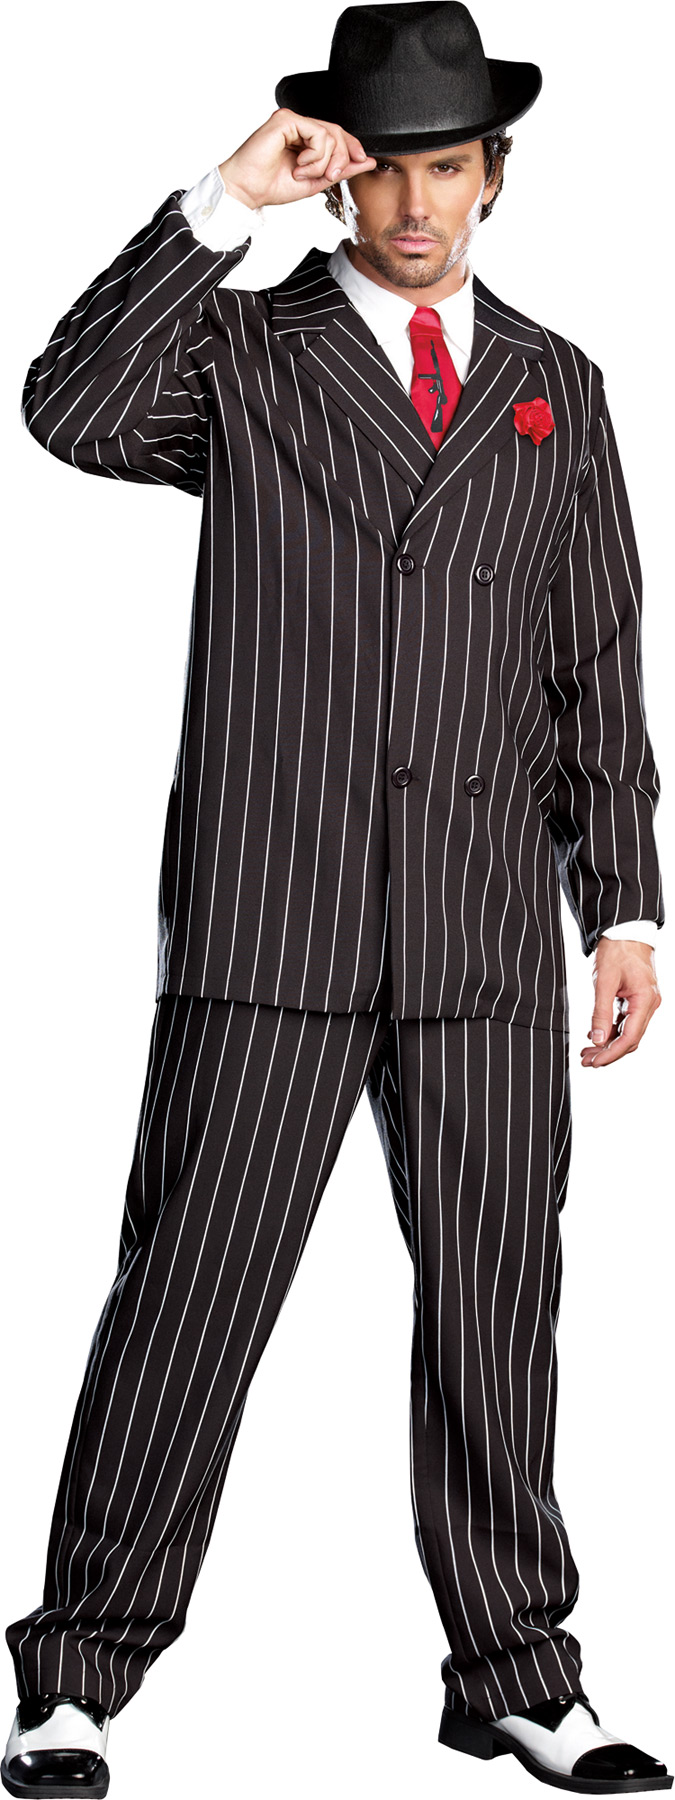 Men's 1920s Gangster Costume Suit